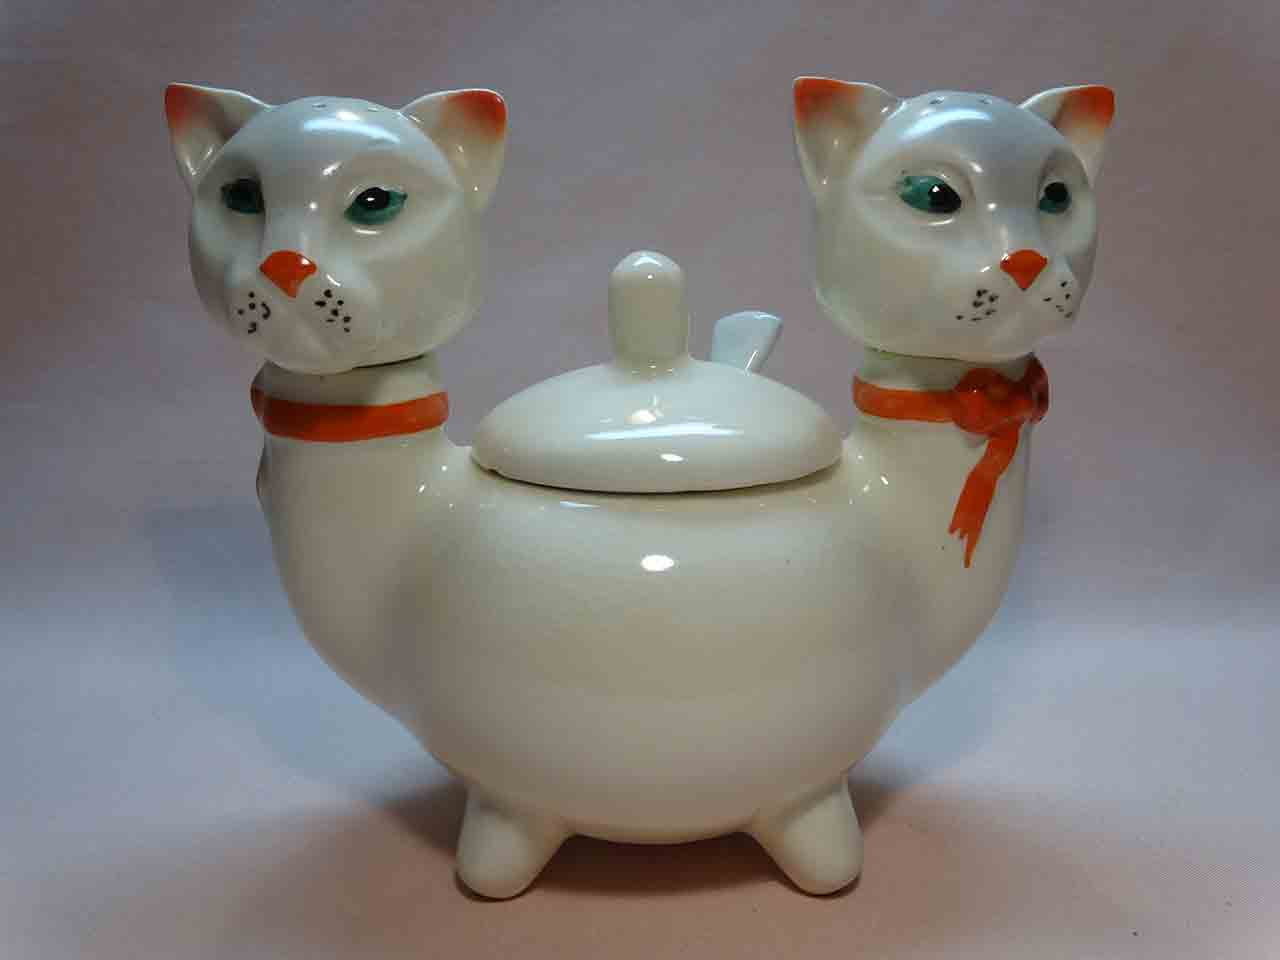 Two-headed cat condiment salt and pepper shakers from Czechoslovakia